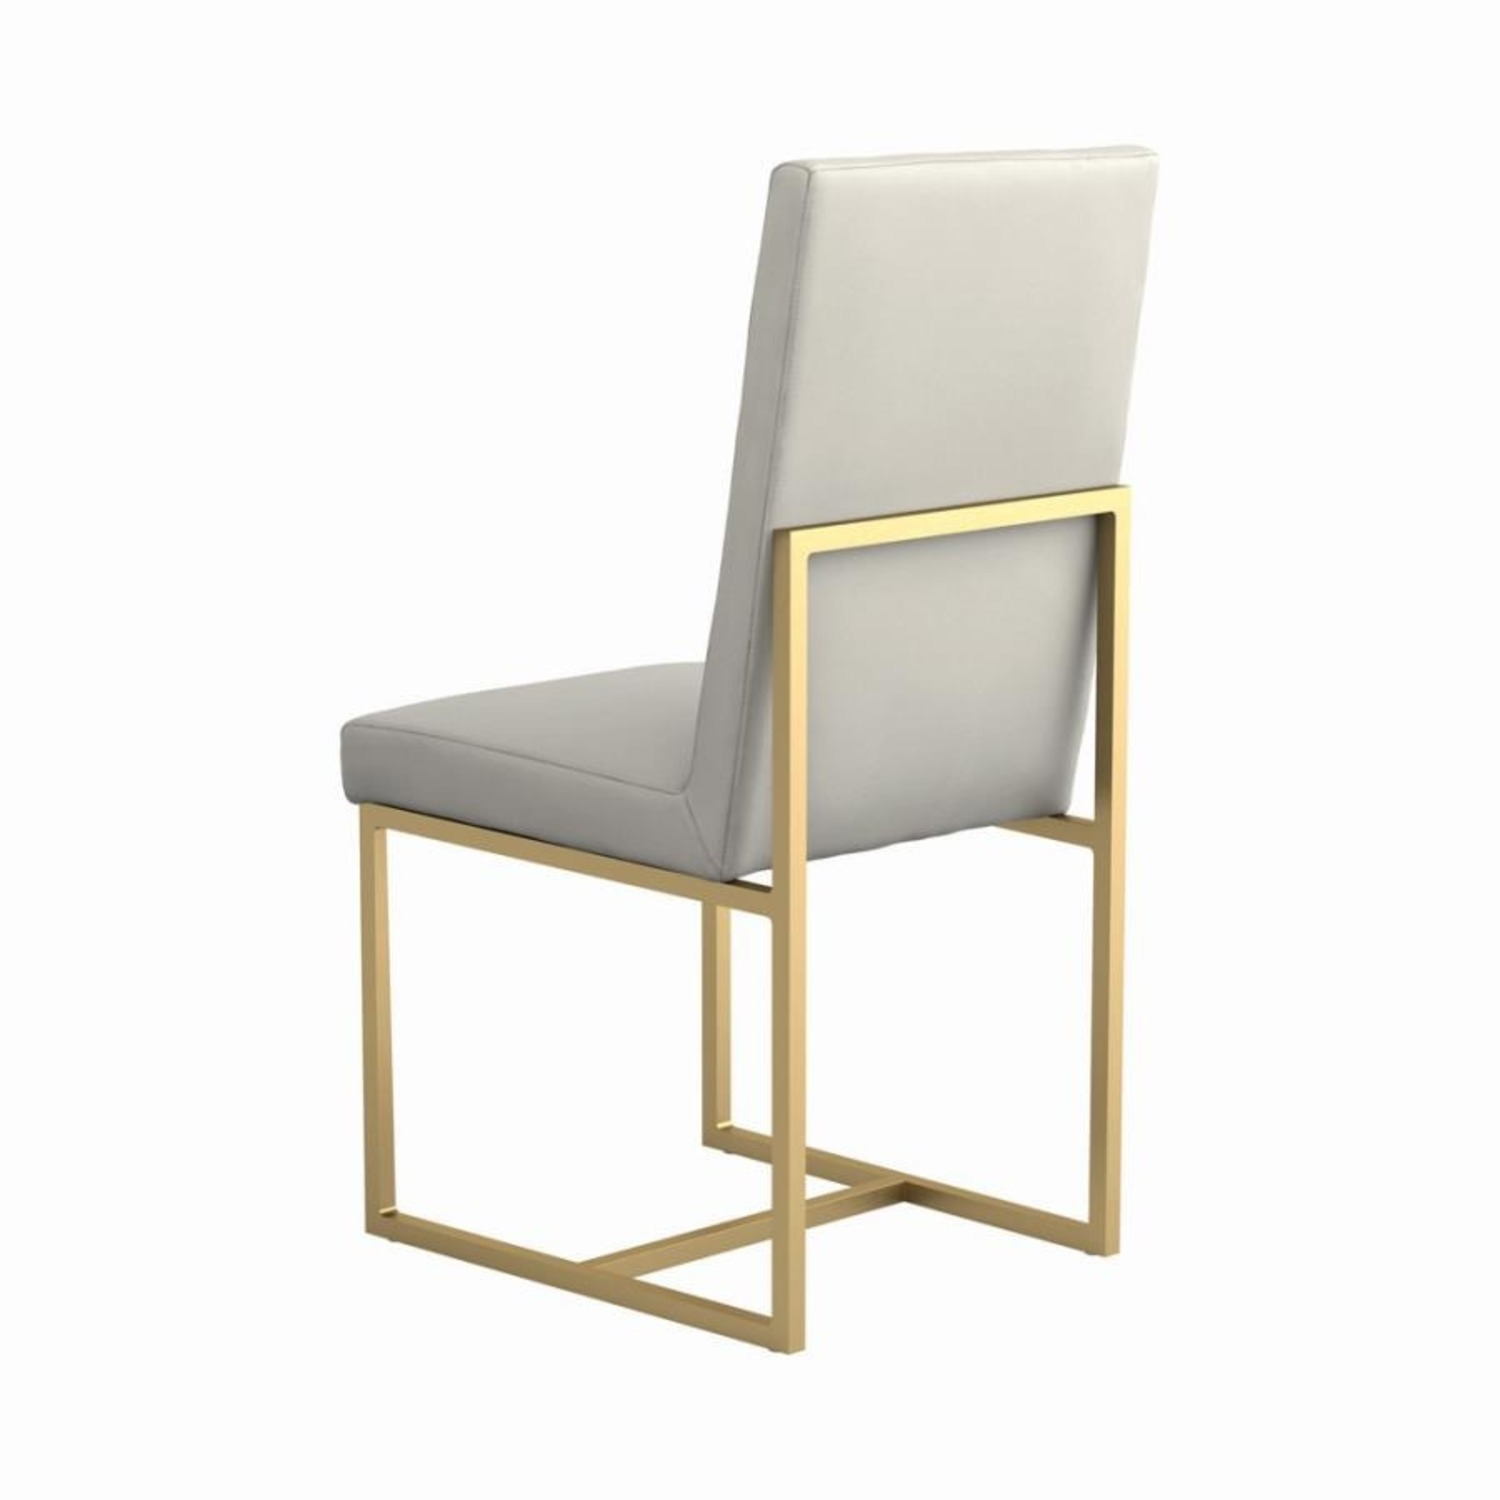 Contemporary Side Chair In Grey Leatherette - image-3